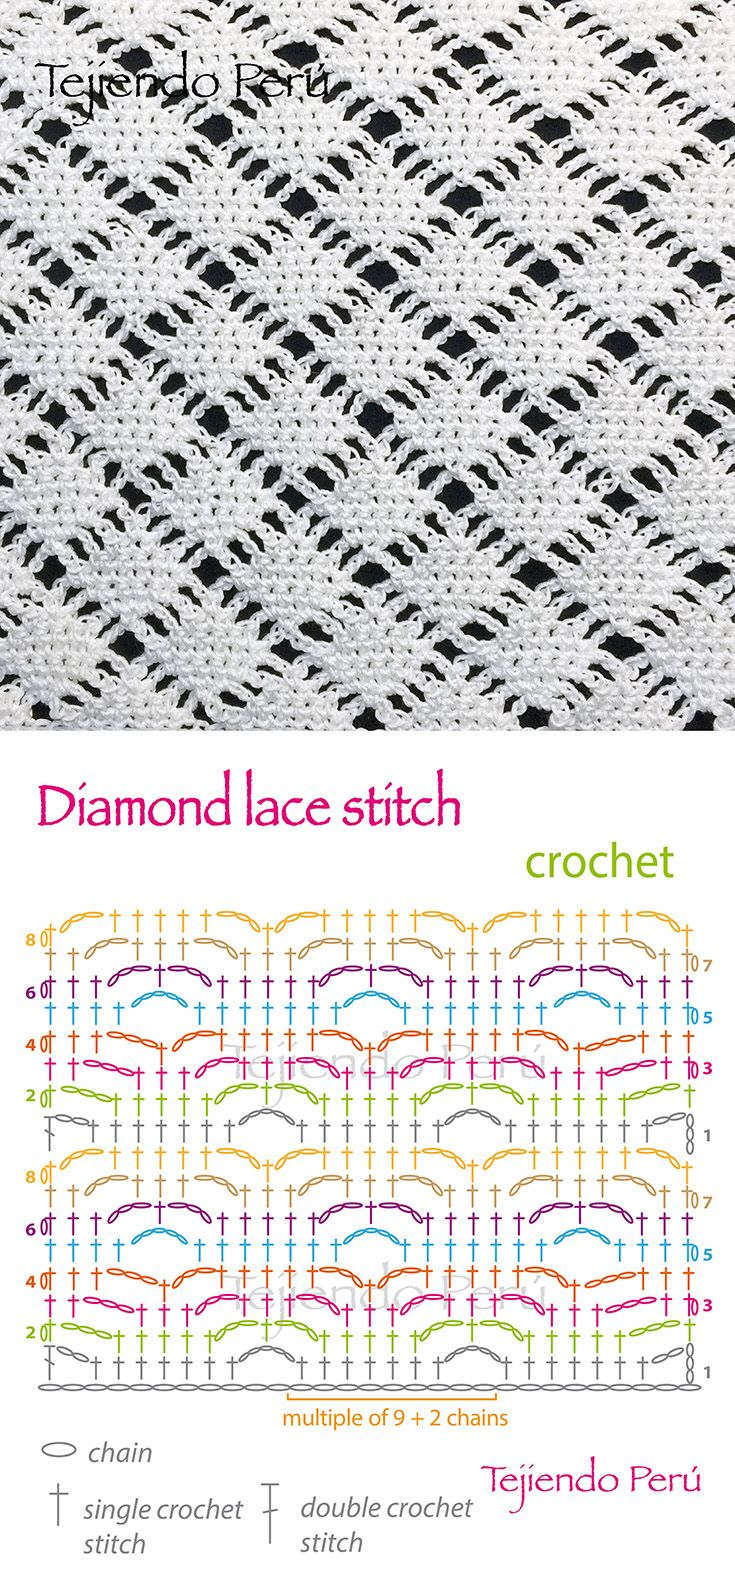 Crochet Diamond Lace Stitch Diagram Handarbeiten Pinterest